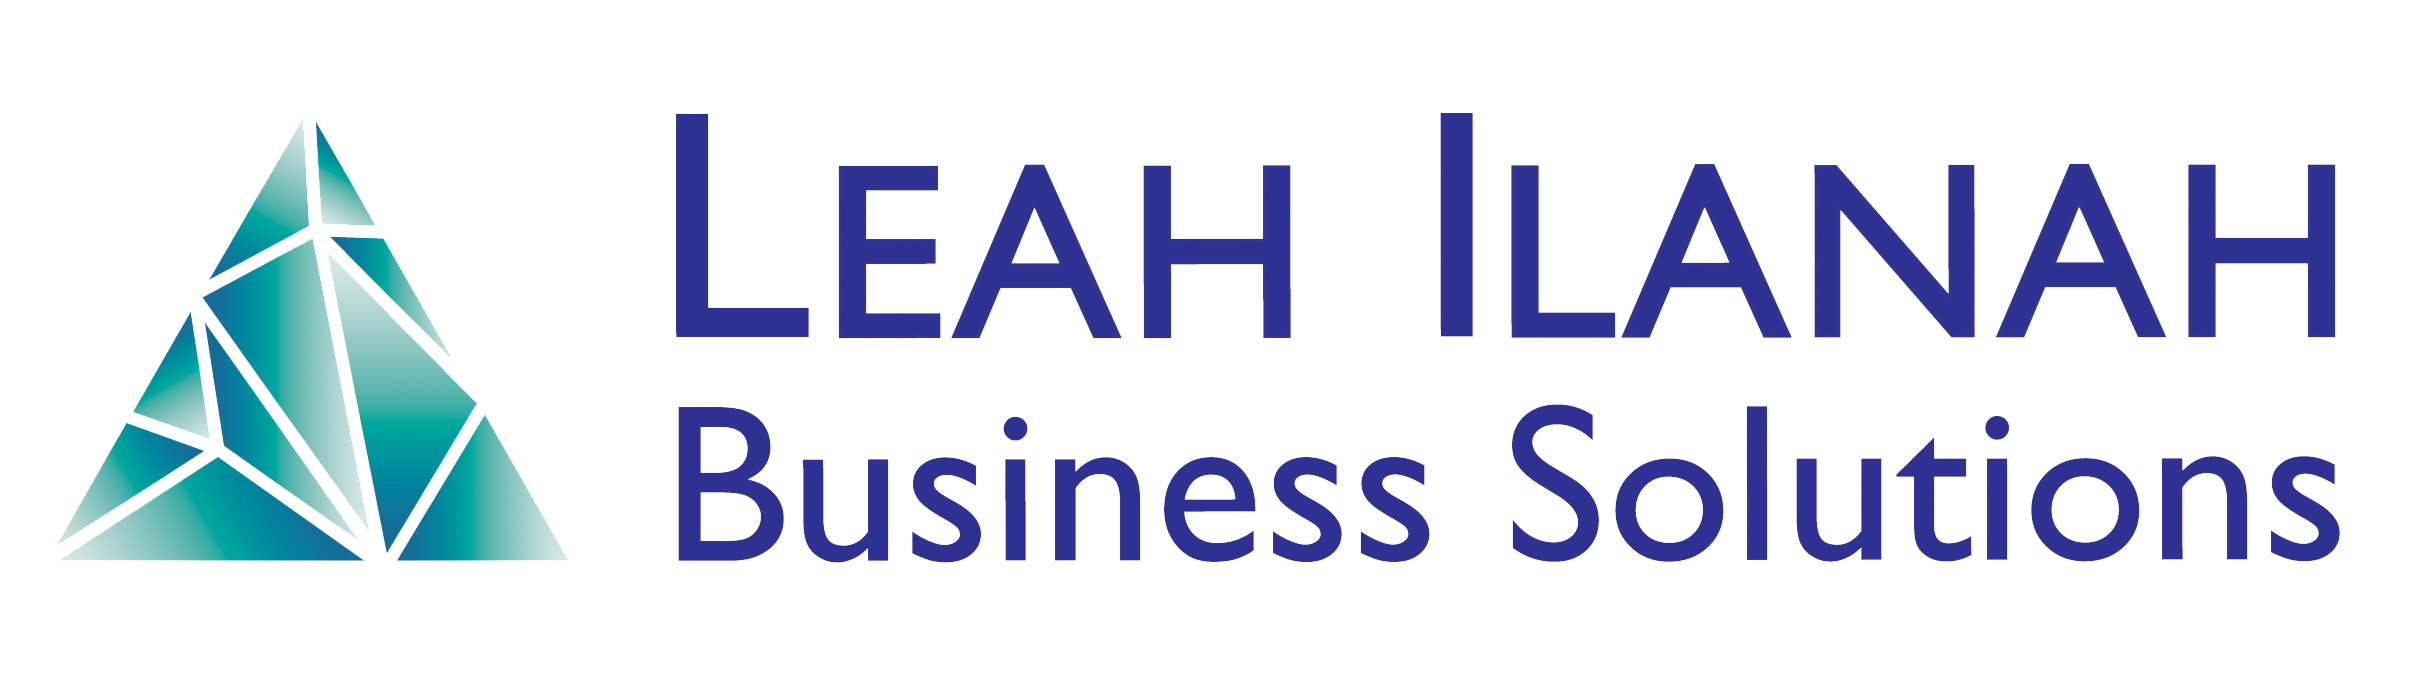 Leah Business Solutions